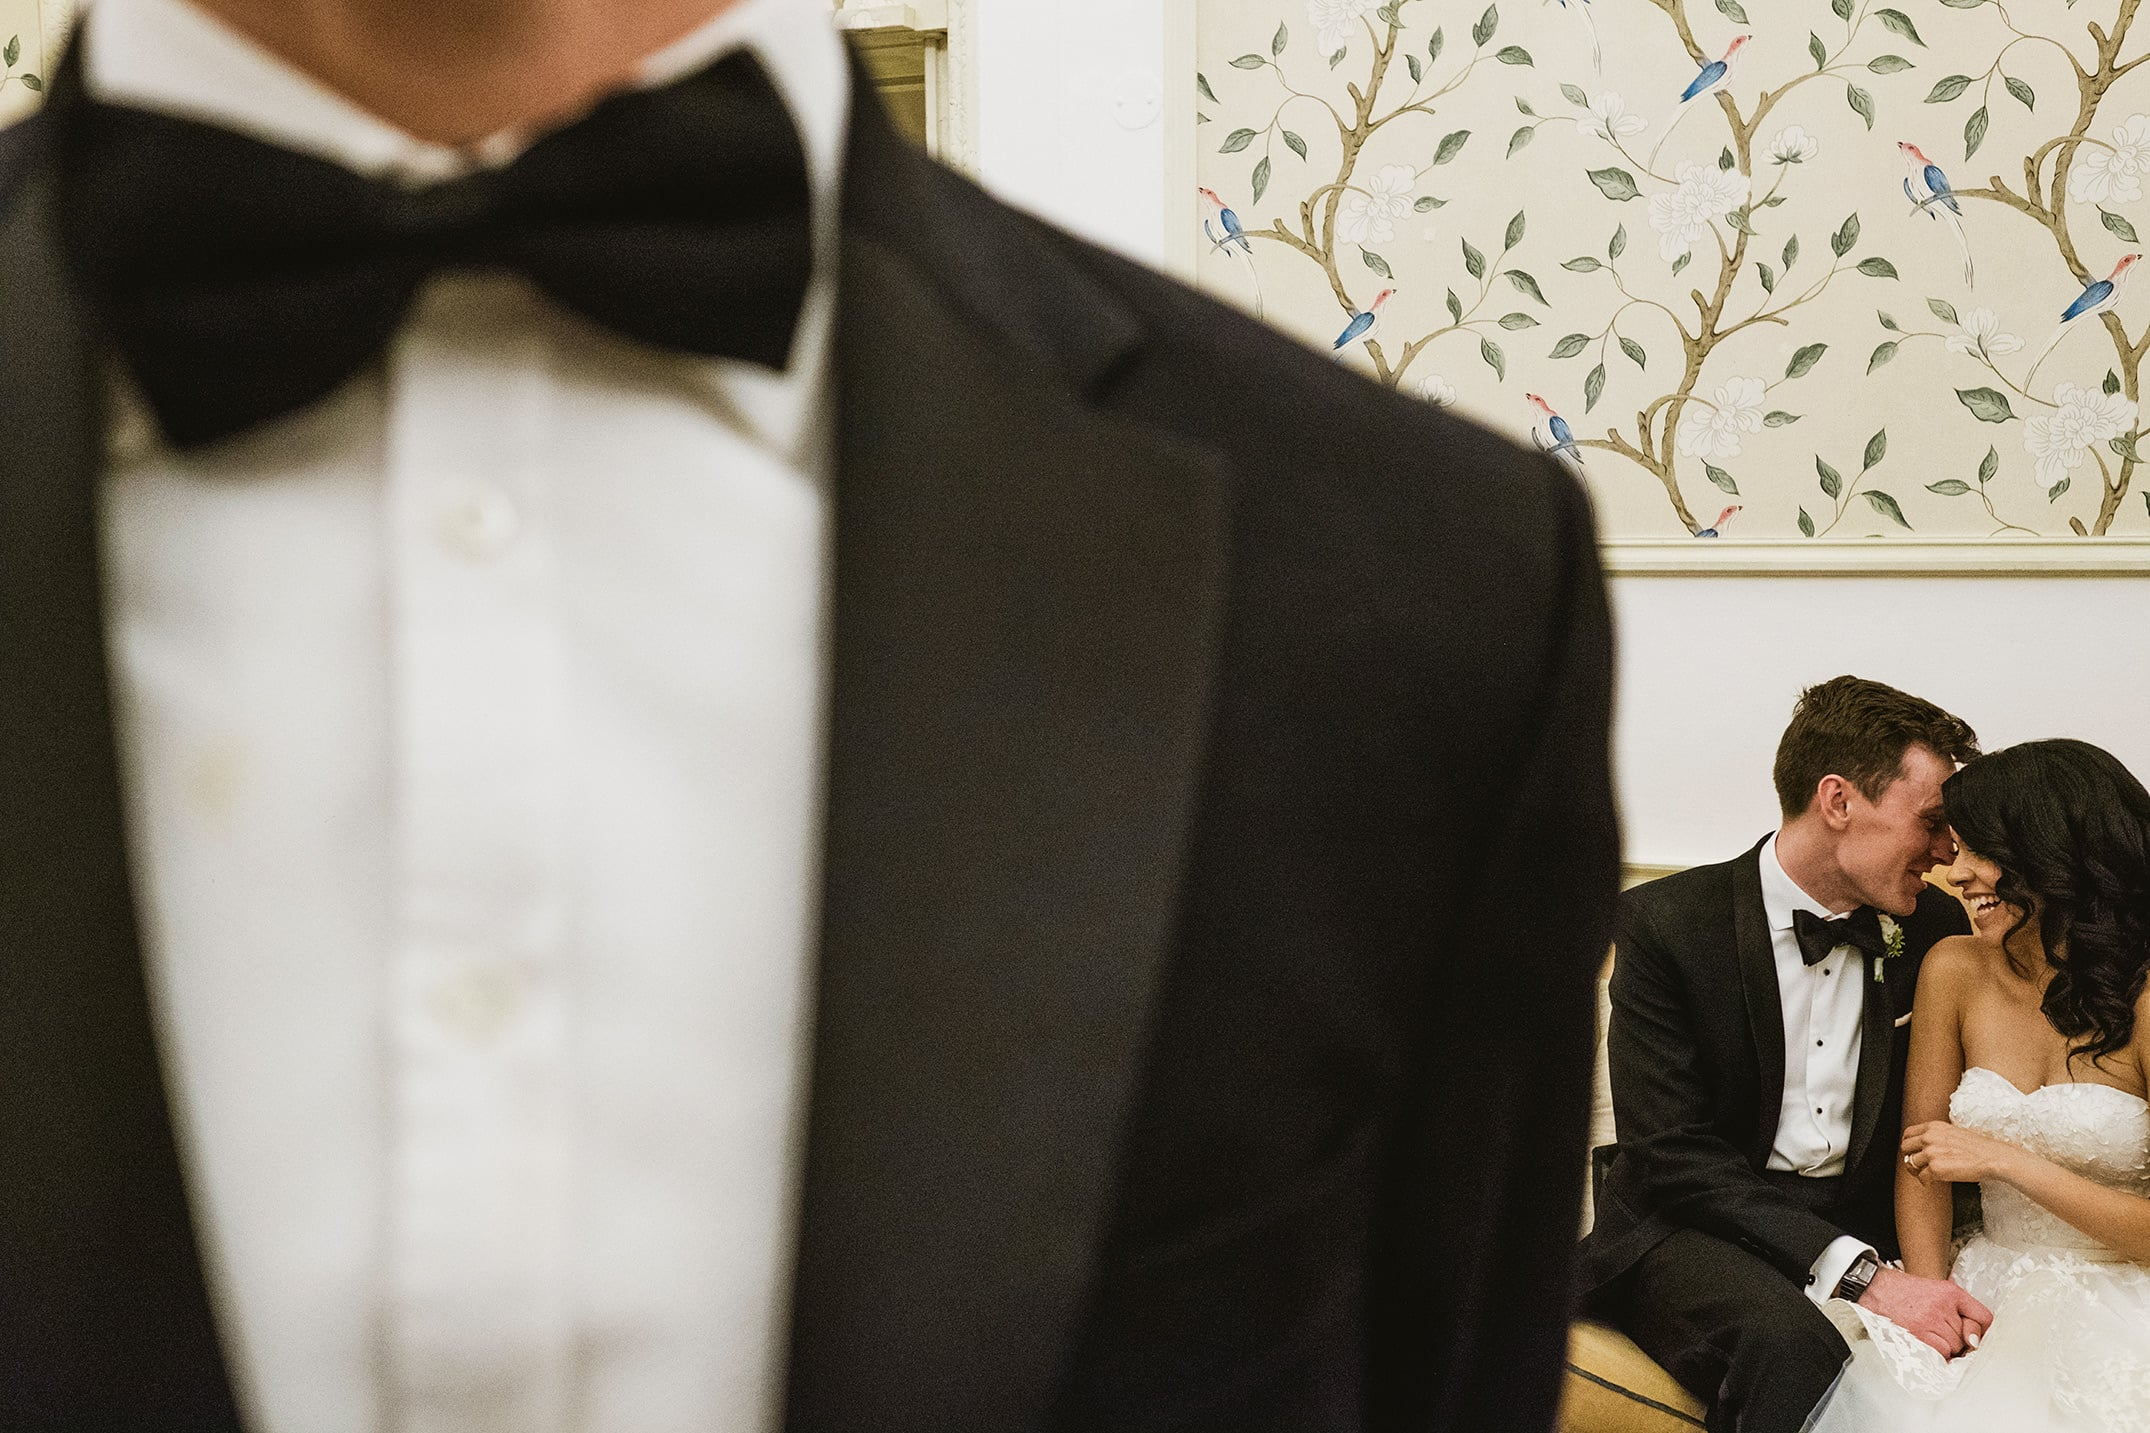 Hedsor House Wedding Photography London. Bride and groom portrait with bow tie foreground.